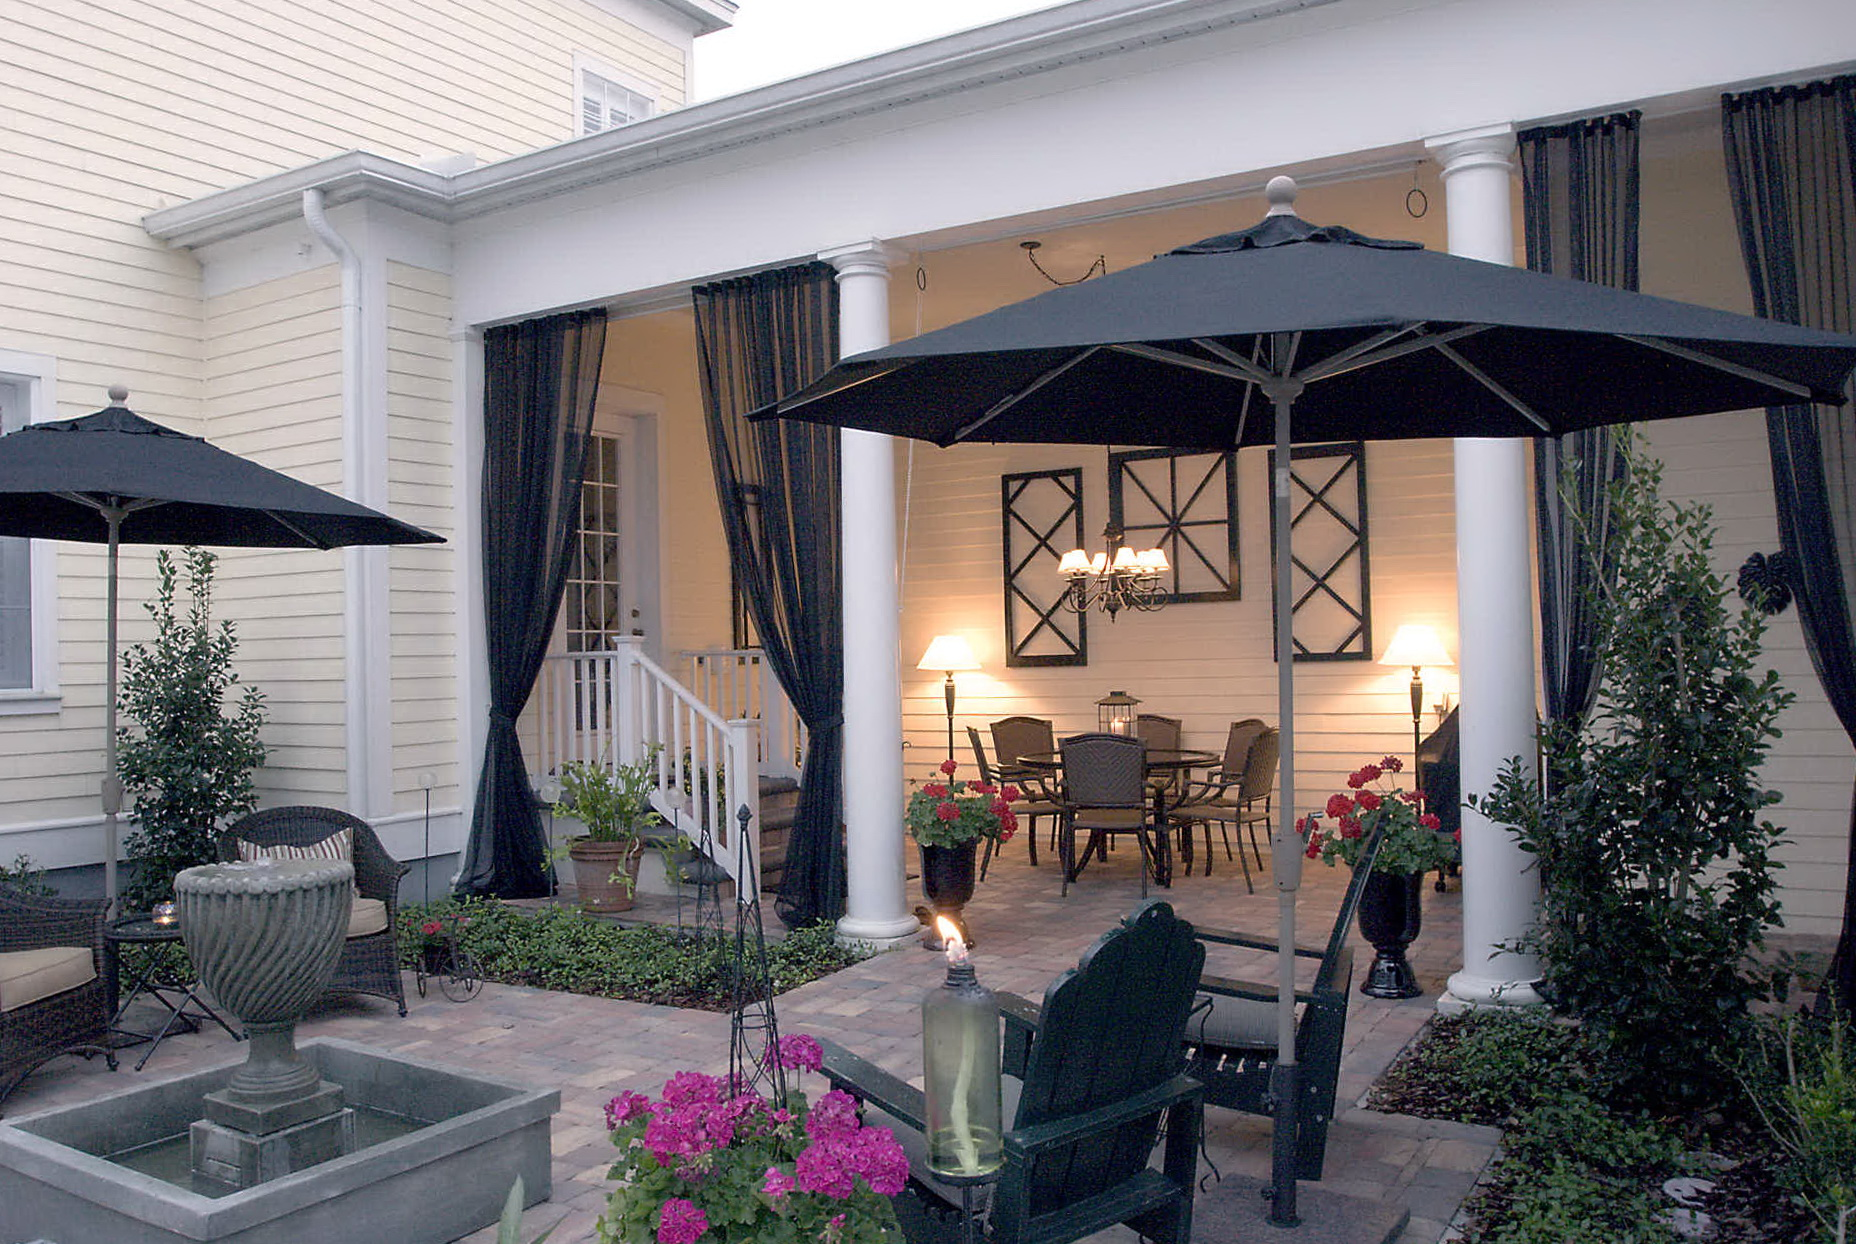 Outdoor curtains for patio ikea home design ideas for Outdoor curtains for patio ikea